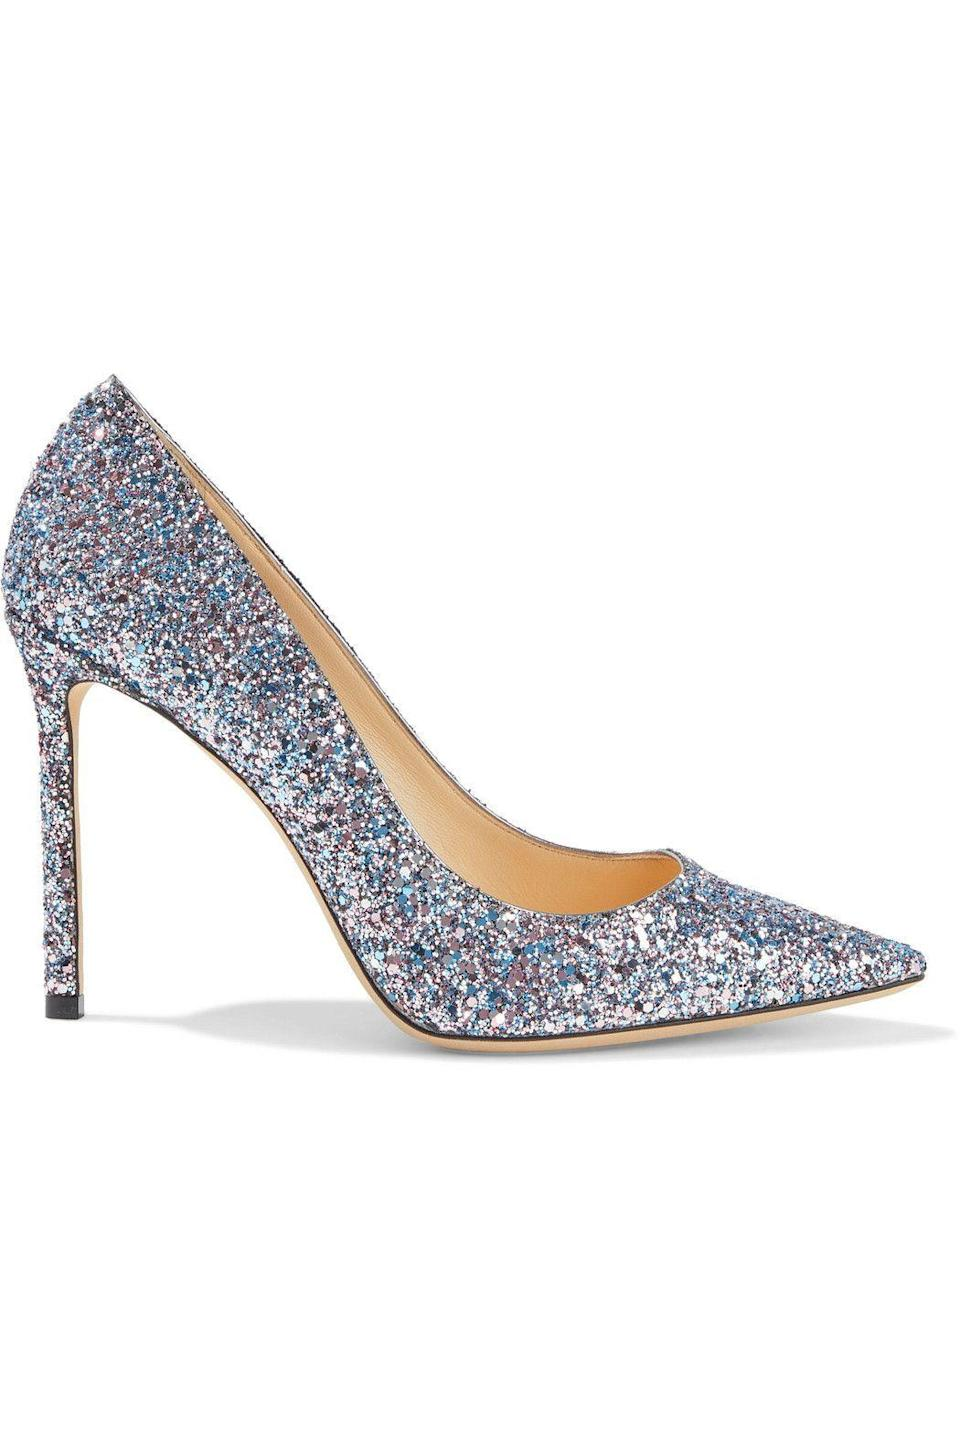 """<p><strong>JIMMY CHOO</strong></p><p>theoutnet.com</p><p><strong>$337.00</strong></p><p><a href=""""https://go.redirectingat.com?id=74968X1596630&url=https%3A%2F%2Fwww.theoutnet.com%2Fen-us%2Fshop%2Fproduct%2Fjimmy-choo%2Fpumps%2Fhigh-heel-pumps%2Fromy-100-glittered-woven-pumps%2F2204324140401667&sref=https%3A%2F%2Fwww.harpersbazaar.com%2Ffashion%2Ftrends%2Fg34788766%2Fthe-outnets-black-friday-sale-2020%2F"""" rel=""""nofollow noopener"""" target=""""_blank"""" data-ylk=""""slk:Shop Now"""" class=""""link rapid-noclick-resp"""">Shop Now</a></p><p>And so does a pair of sparkly ones. </p>"""